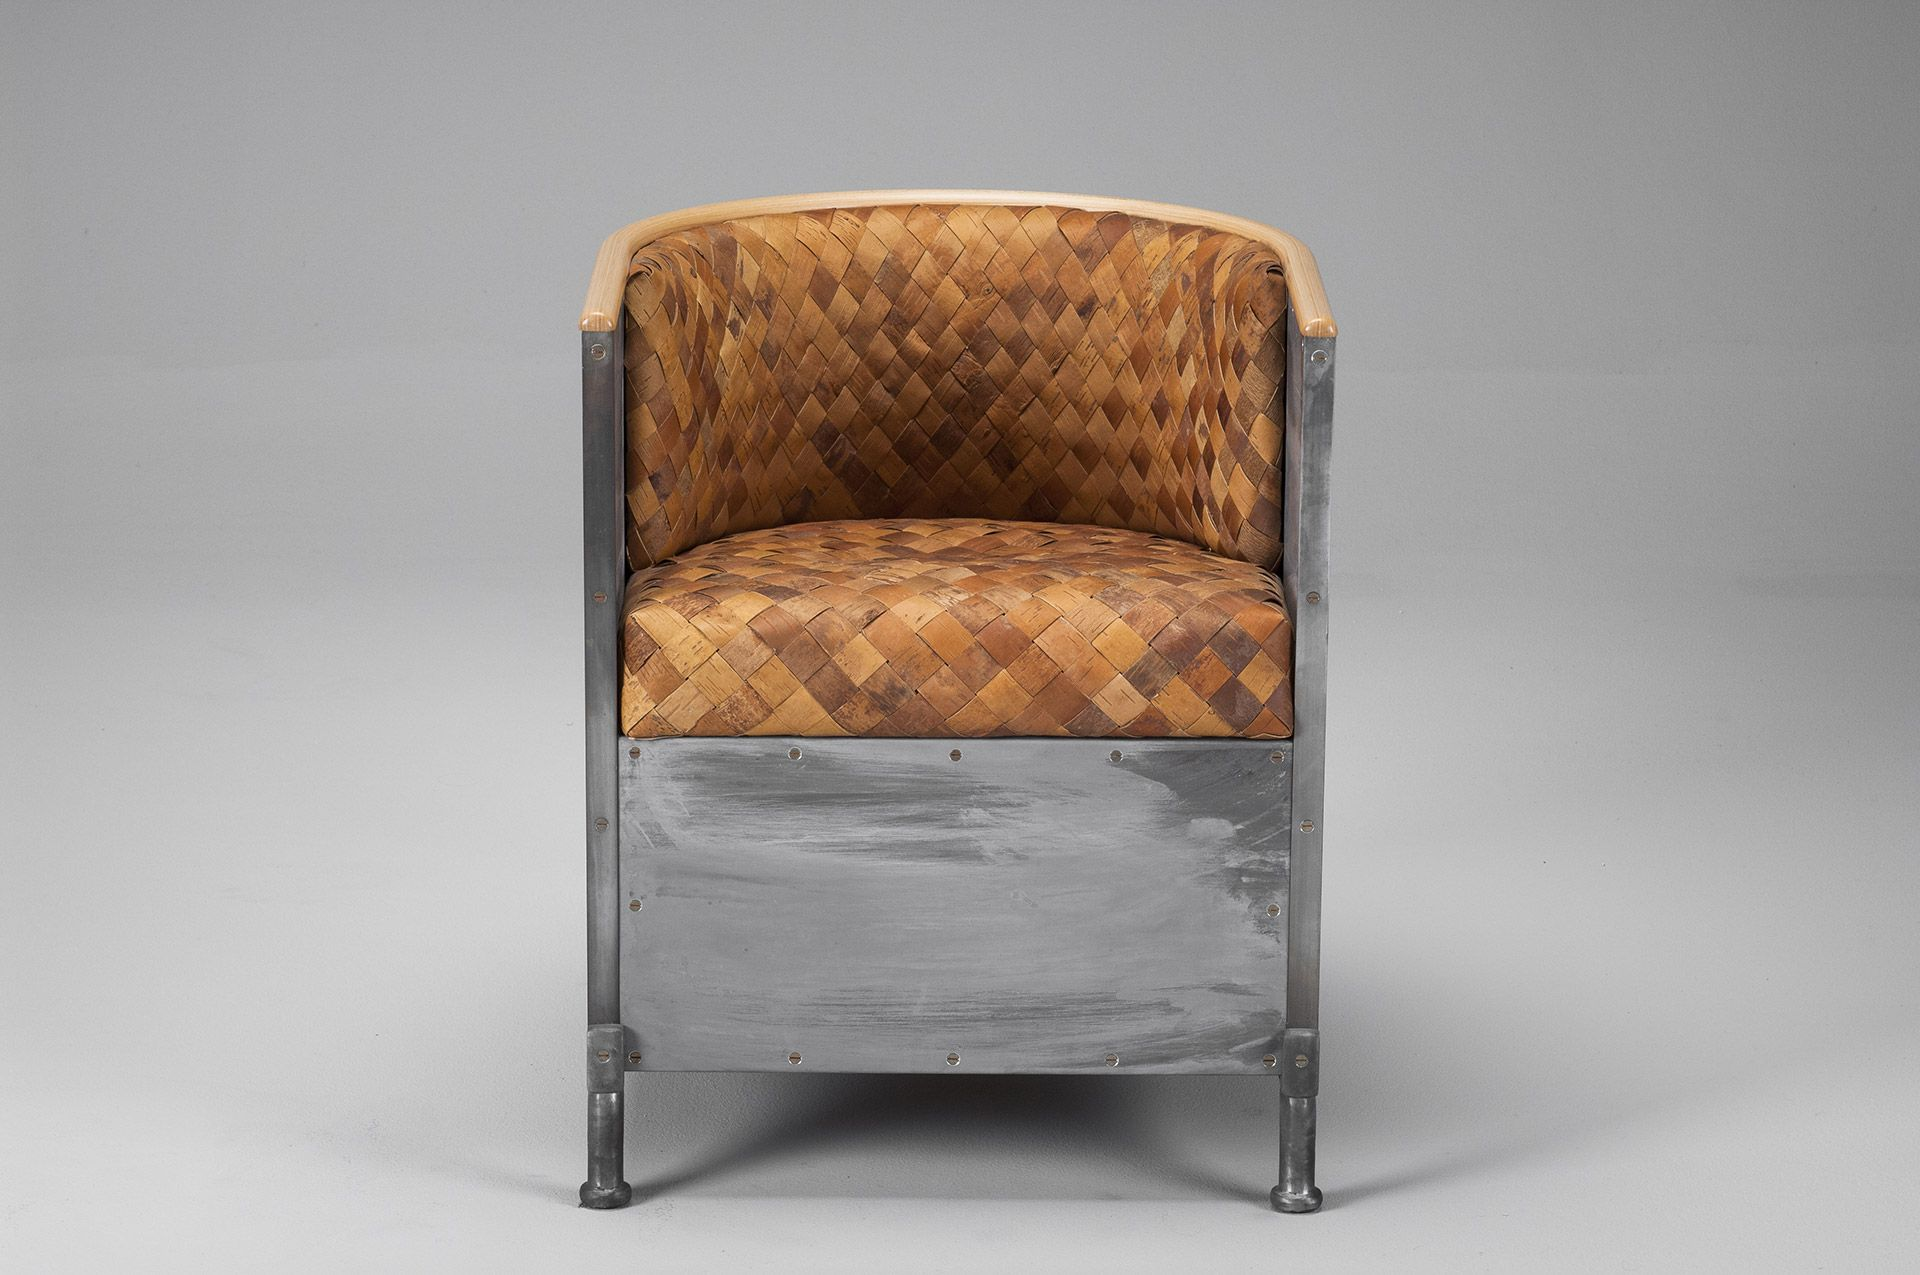 Mats Theselius Chair Furniture, Aluminum chairs, Chair